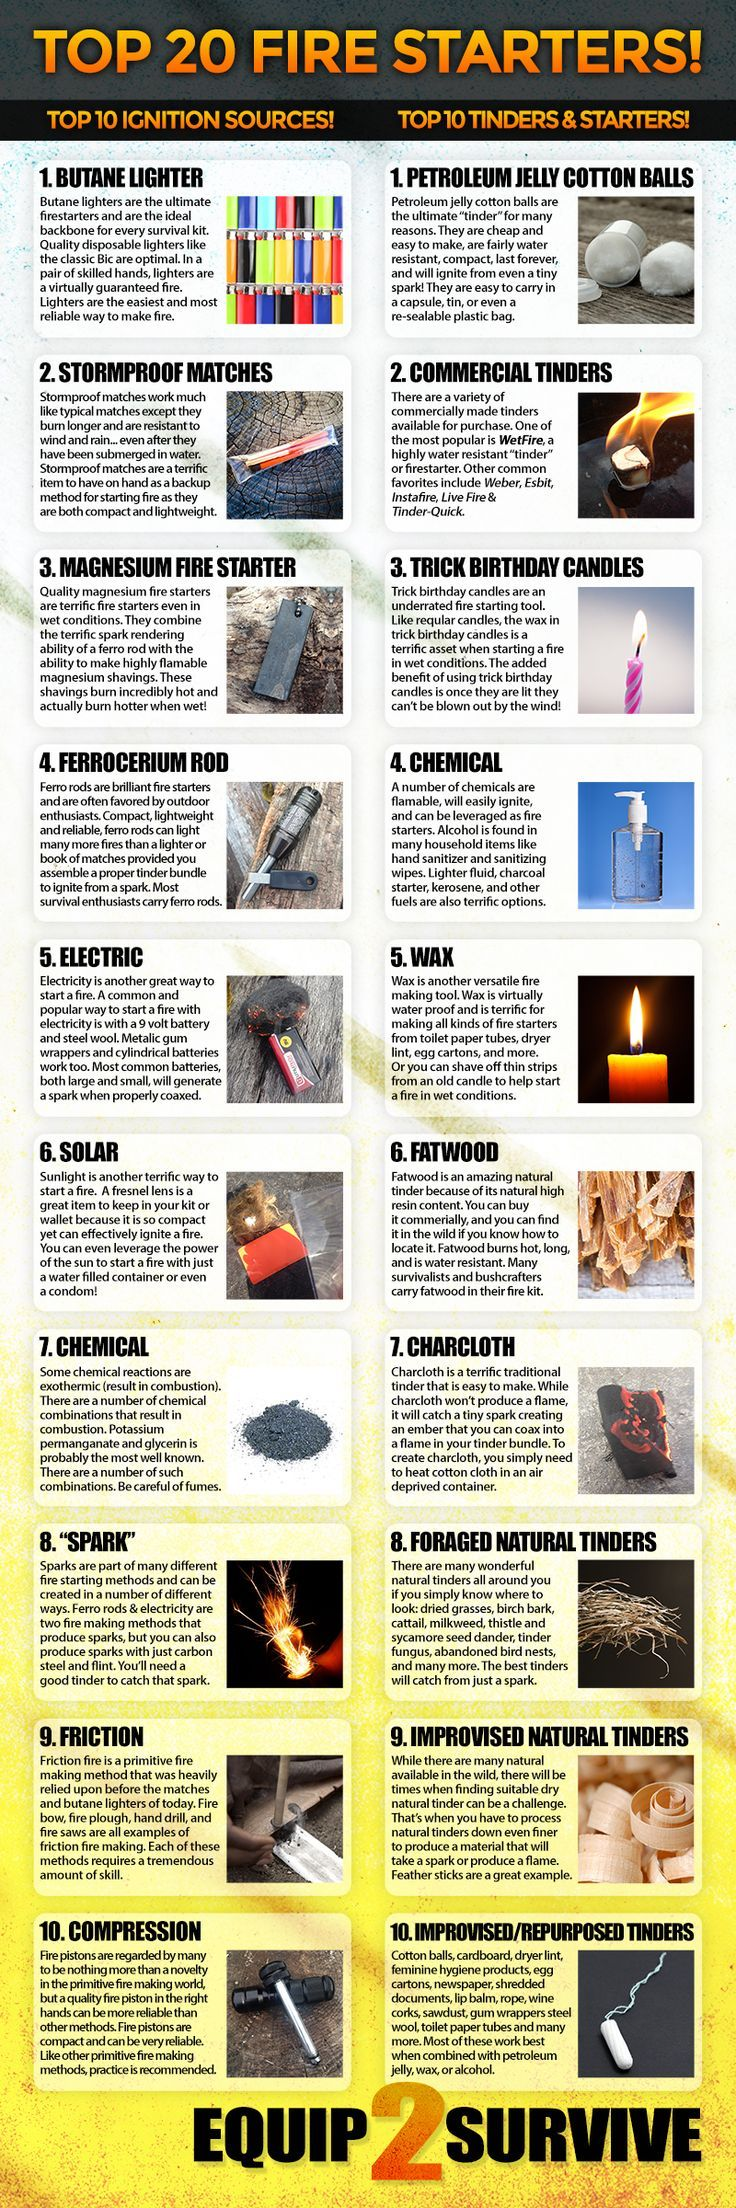 Top 10 Fire Starters and Tinders!! The BEST INFOGRAPHIC about various ignition sources, tinders and fire starters for survival, bushcraft, camping and preparedness enthusiasts!